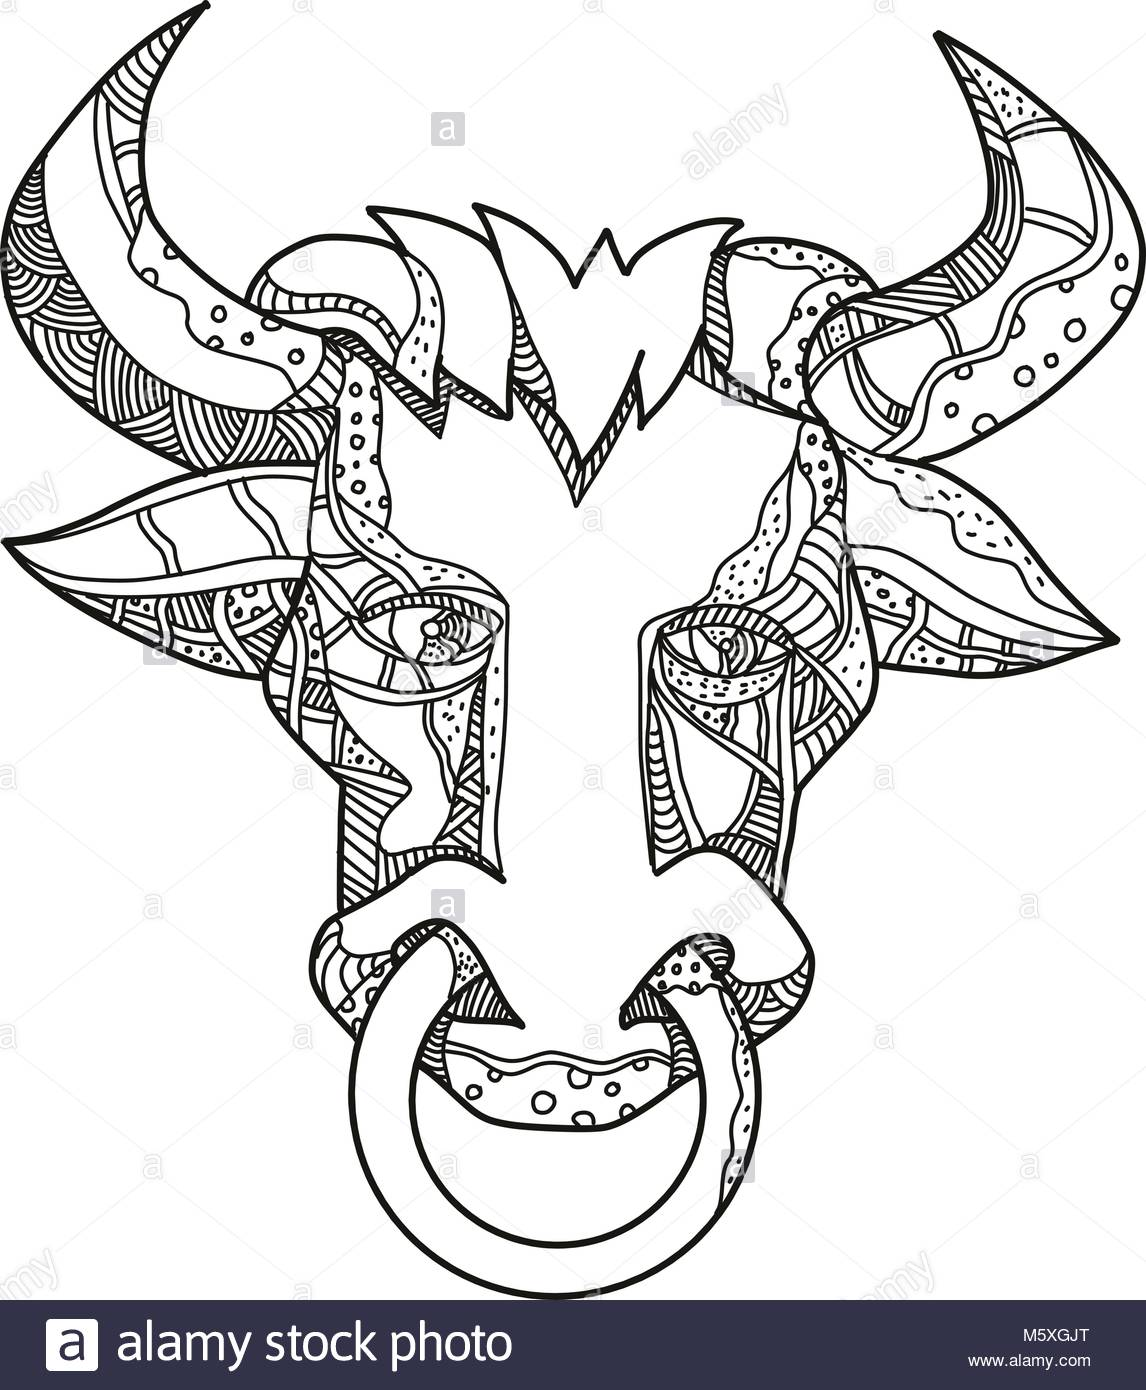 1146x1390 Doodle Art Illustration Of Head Of Pinzgauer Bull Or Cow, A Breeed